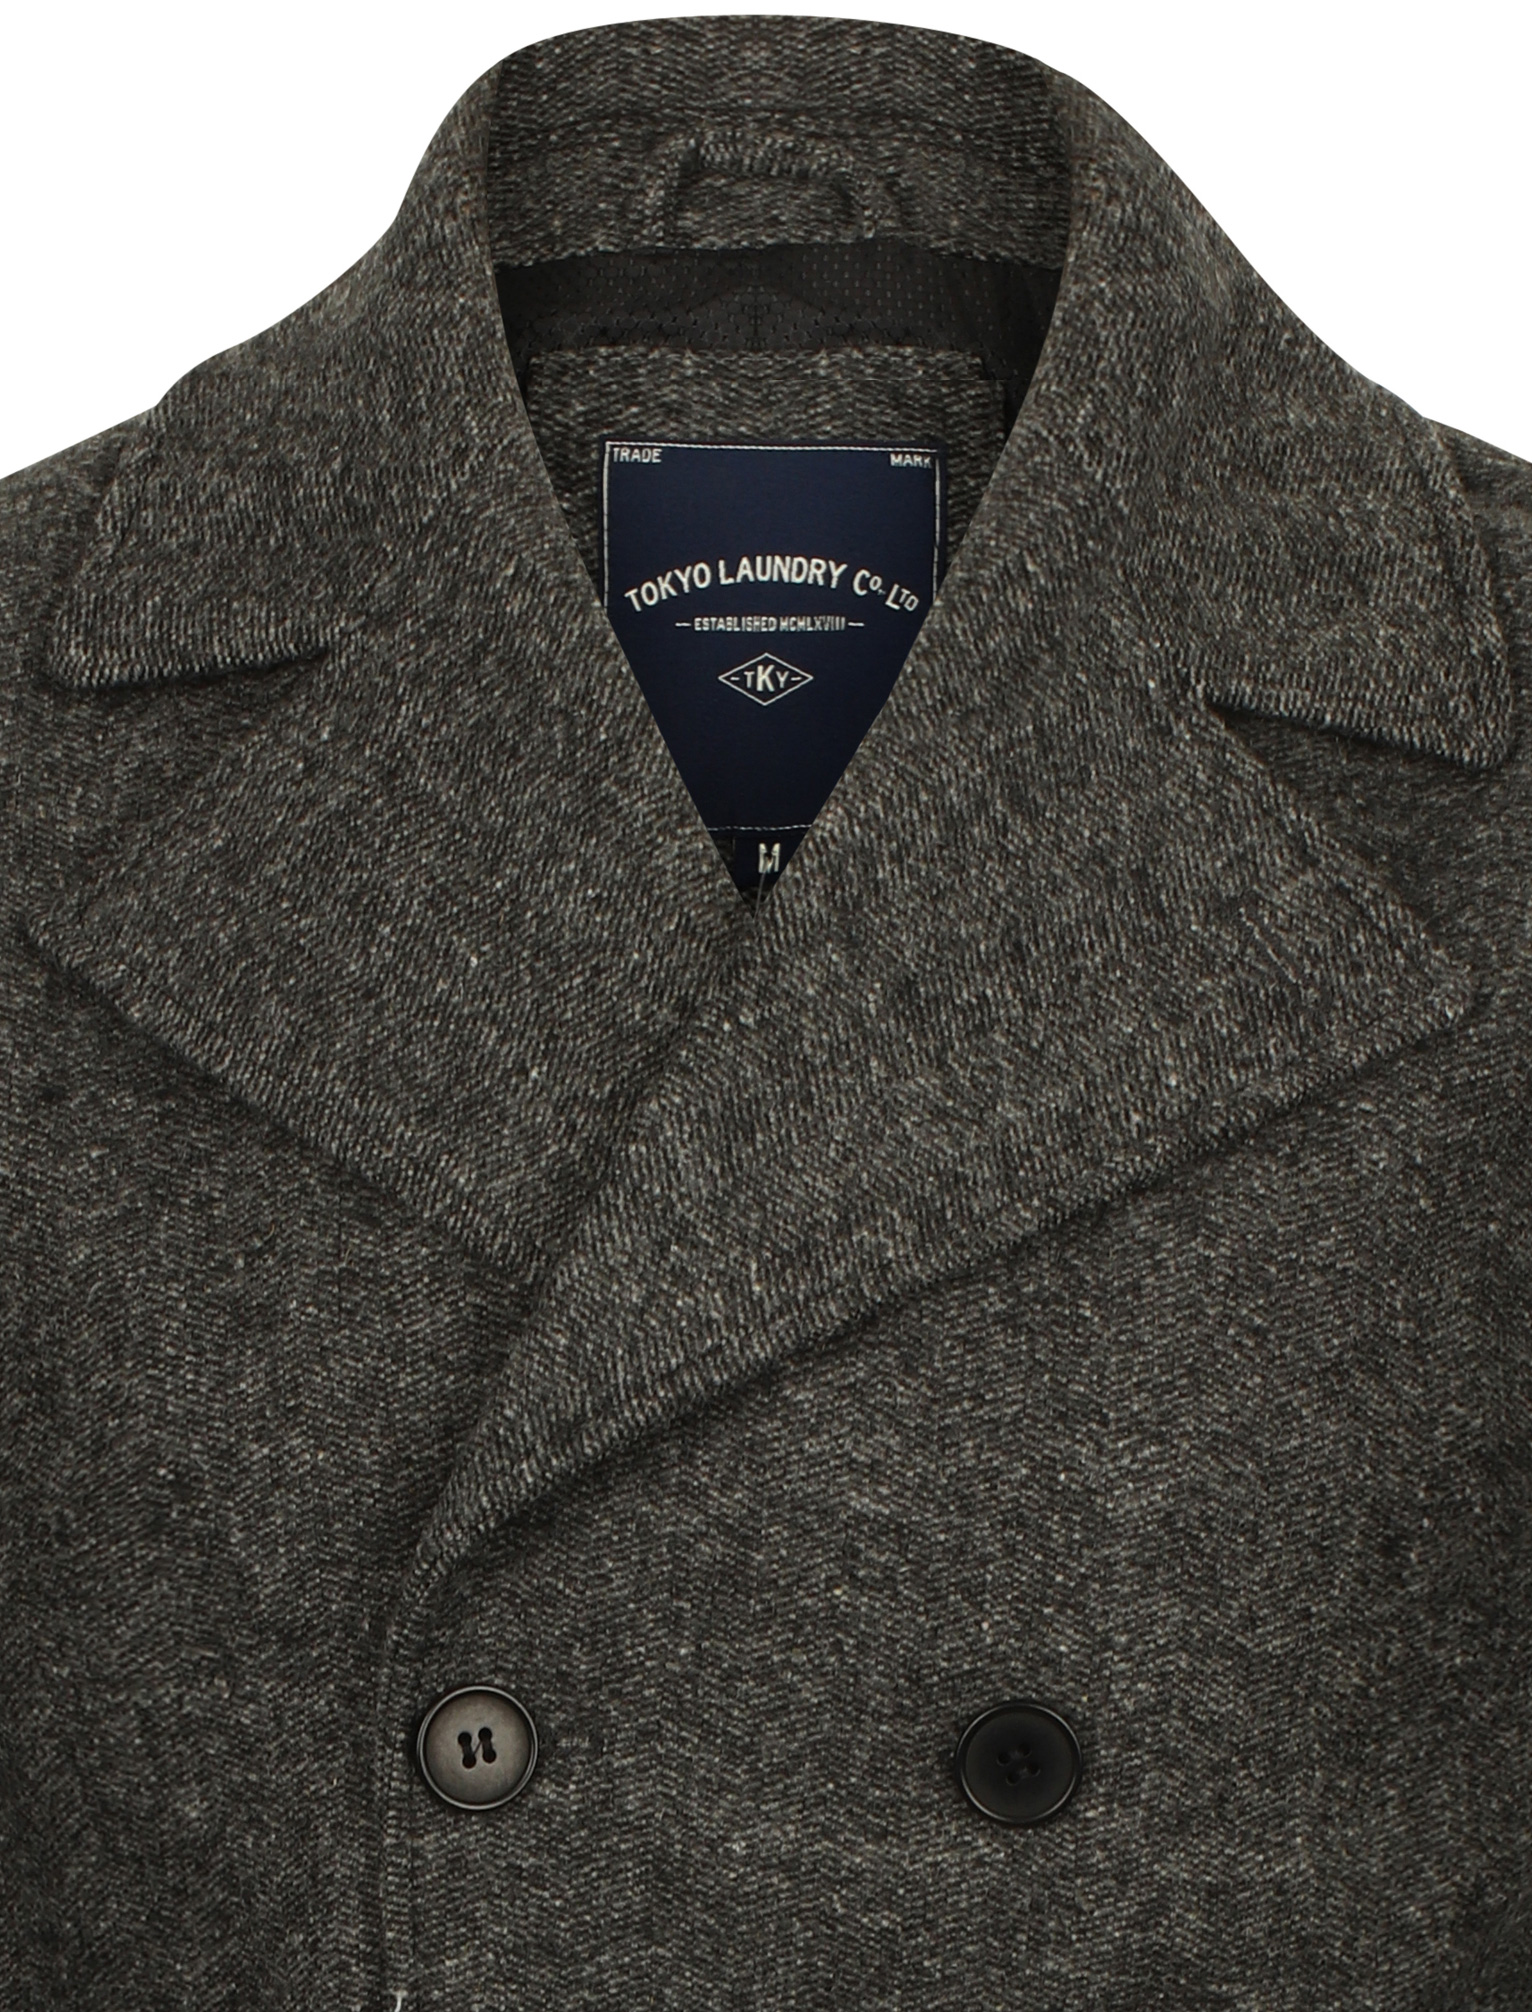 New-Mens-Tokyo-Laundry-Branded-Wool-Blend-Peacoat-Duffle-Coat-Size-S-XXL thumbnail 9